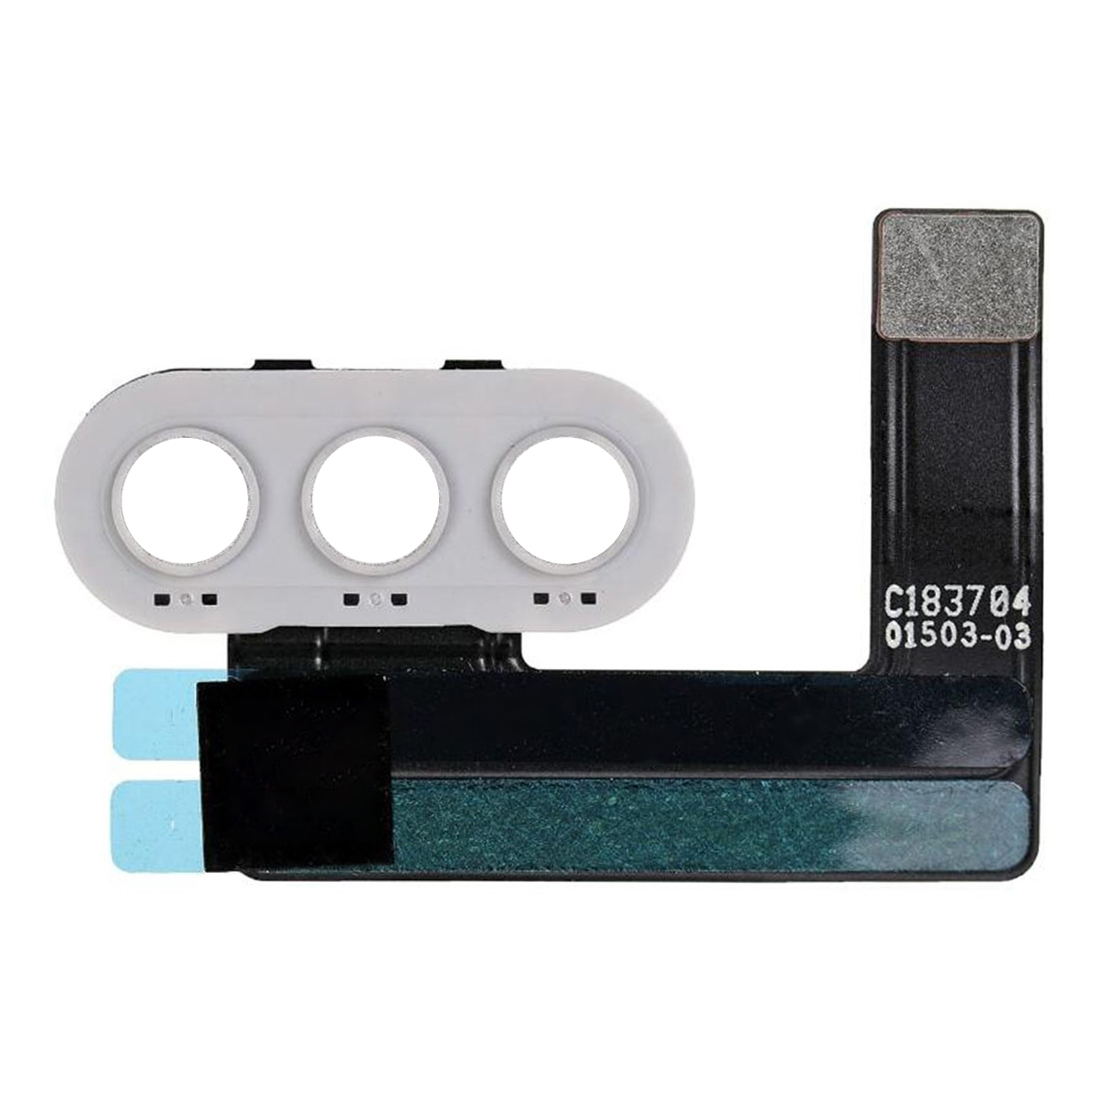 Smart Keyboard Flex Cable for iPad Pro 11 inch